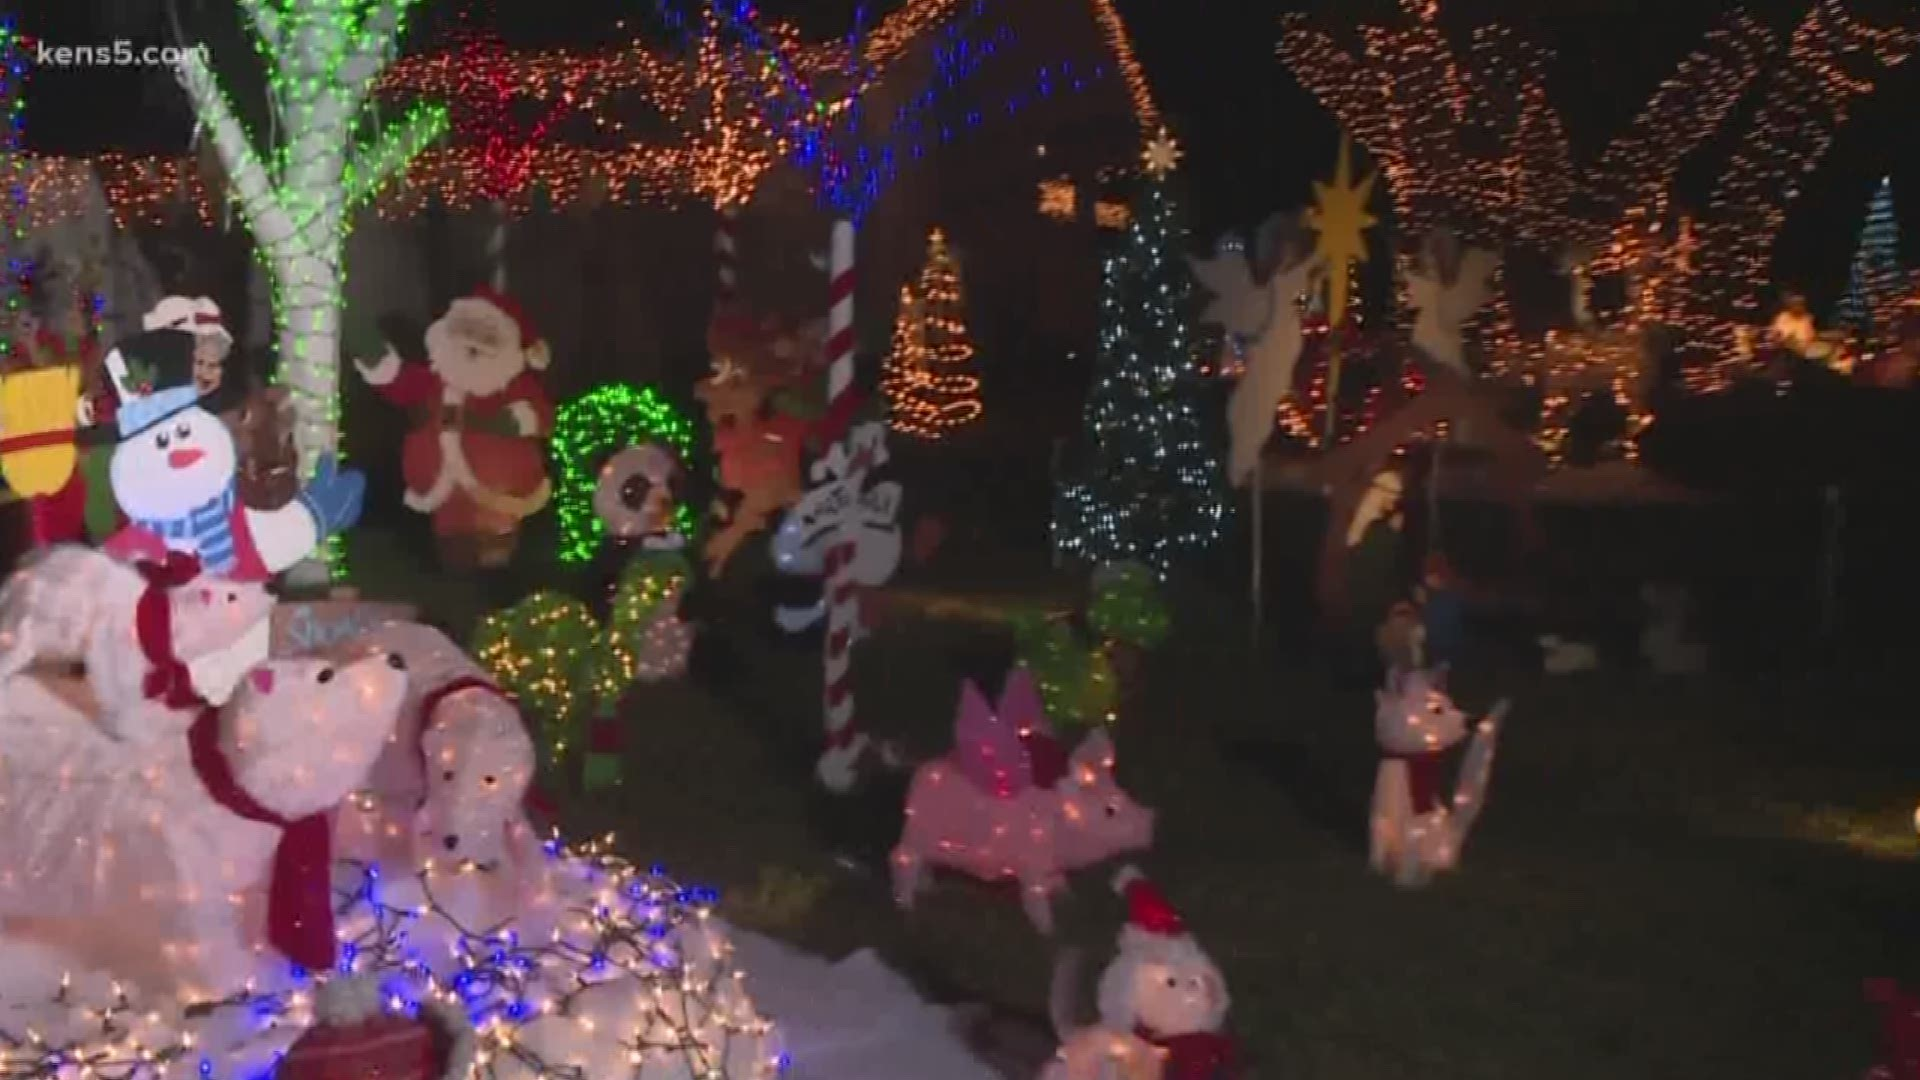 Windcrest Christmas Lights 2020 Traffic San Antonio's Leading Local News: Weather, Traffic, Sports and